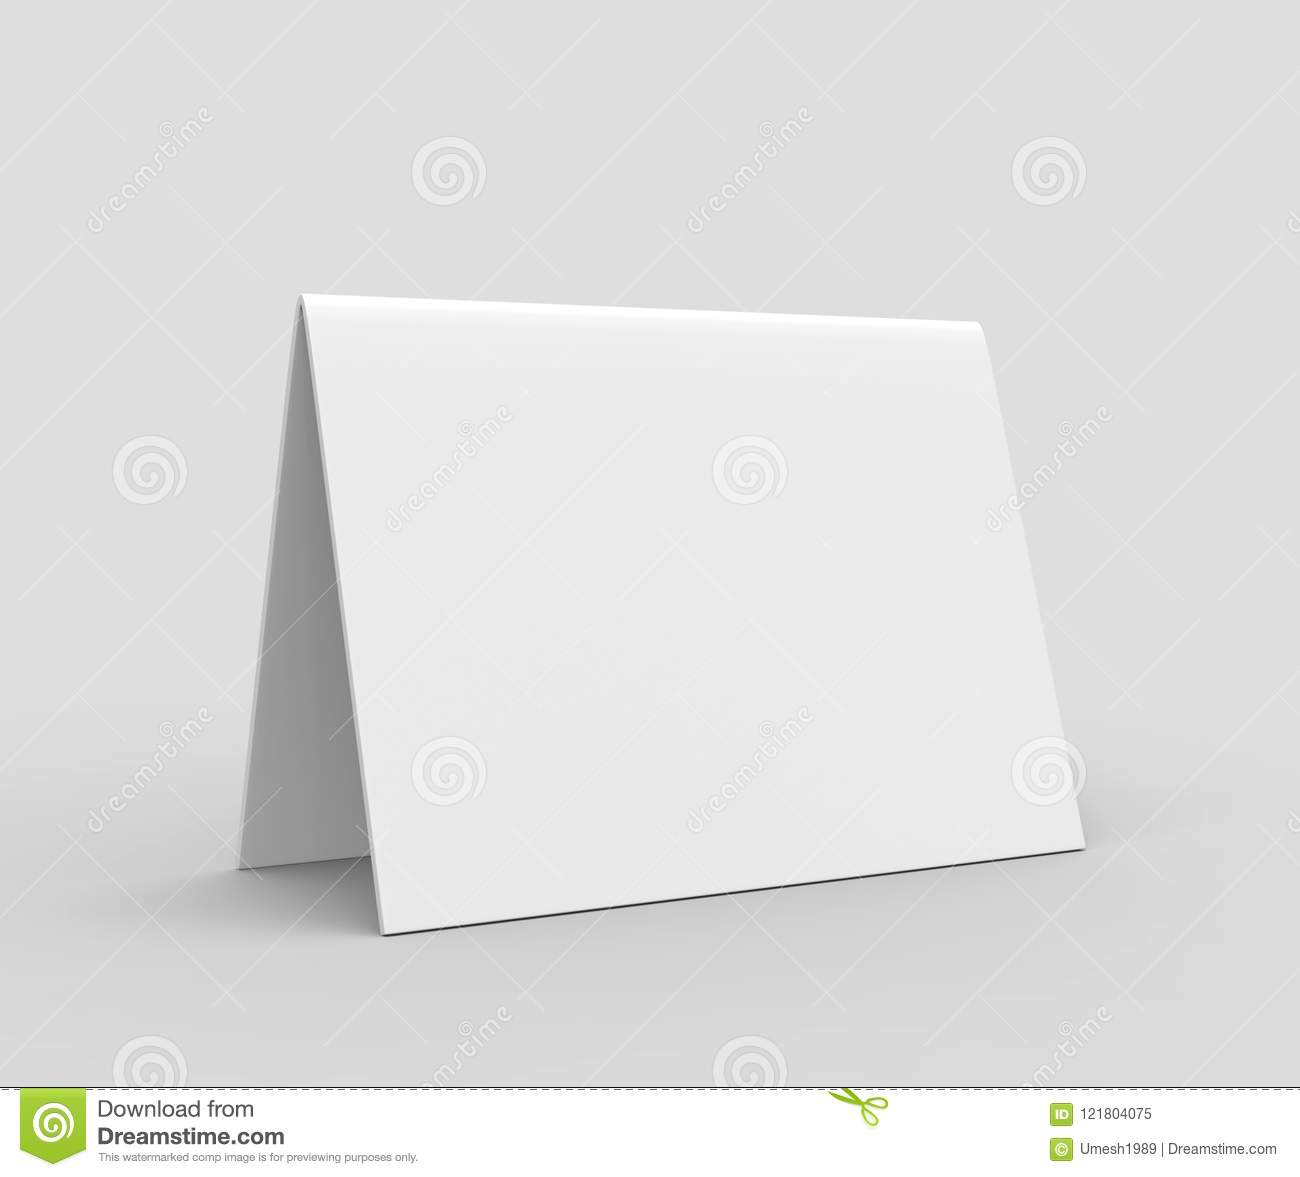 image about Printable Tent Card known as Blank Desk Tent Card For Design and style Presentation Or Mock Up